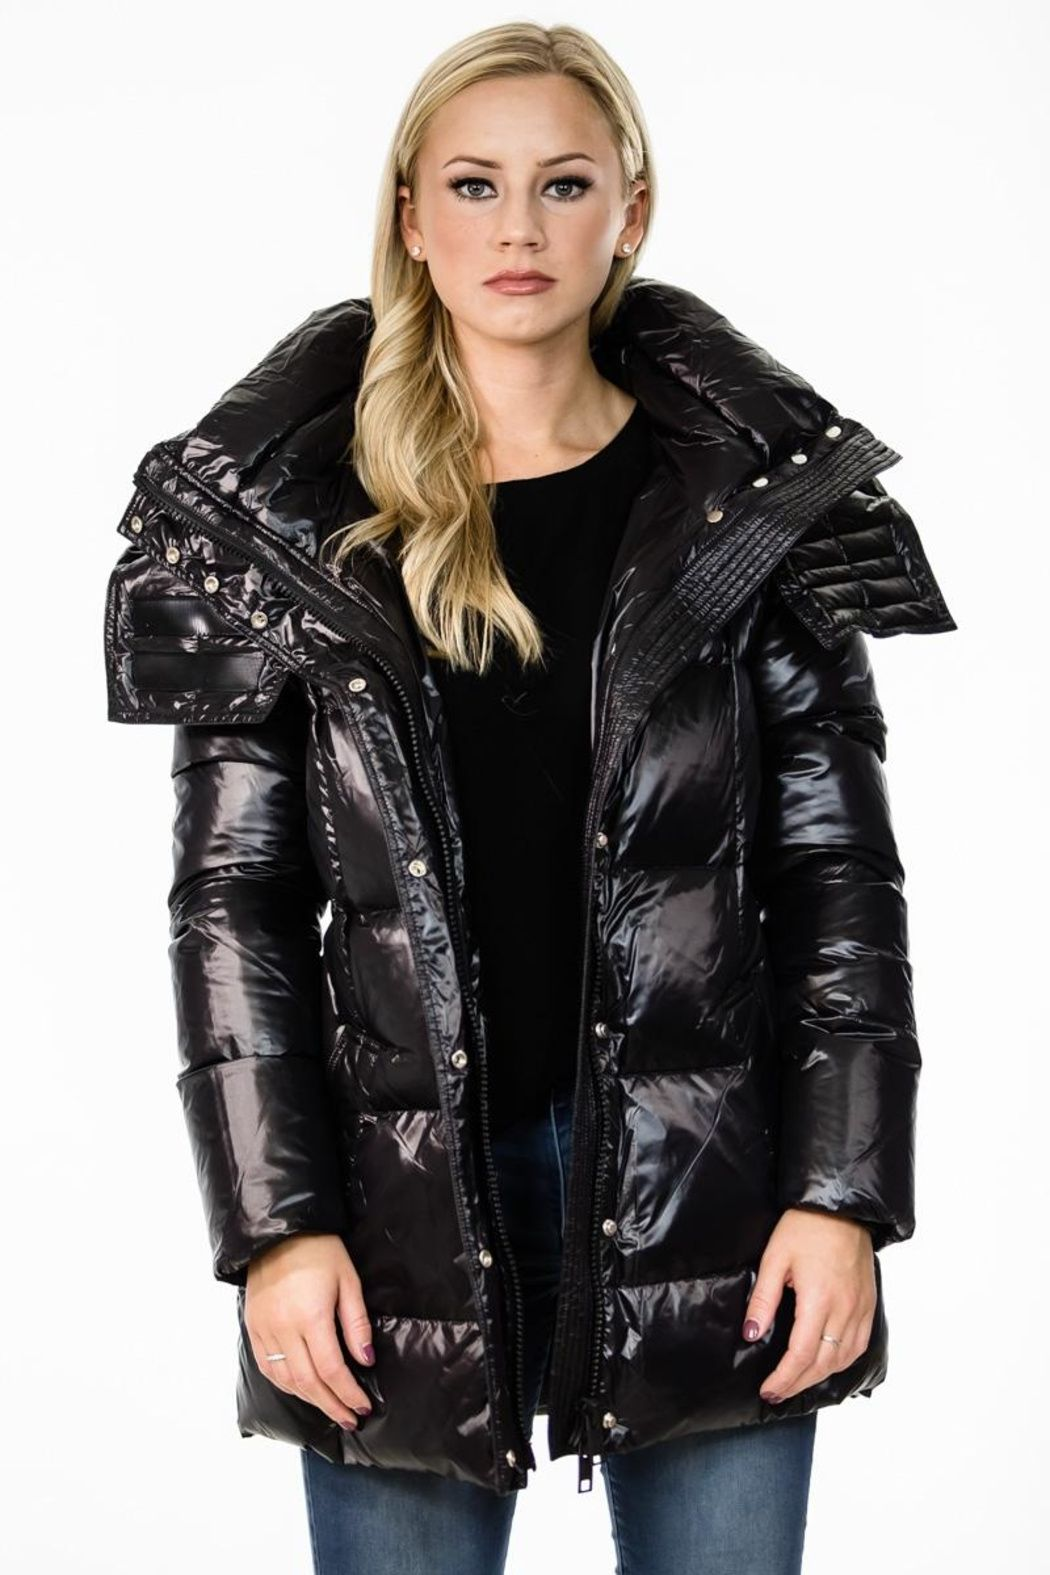 Nicole Benisti Paradiski Down Jacket Mod And Retro Clothing Down Jacket Jackets Quilted Outerwear [ 1575 x 1050 Pixel ]